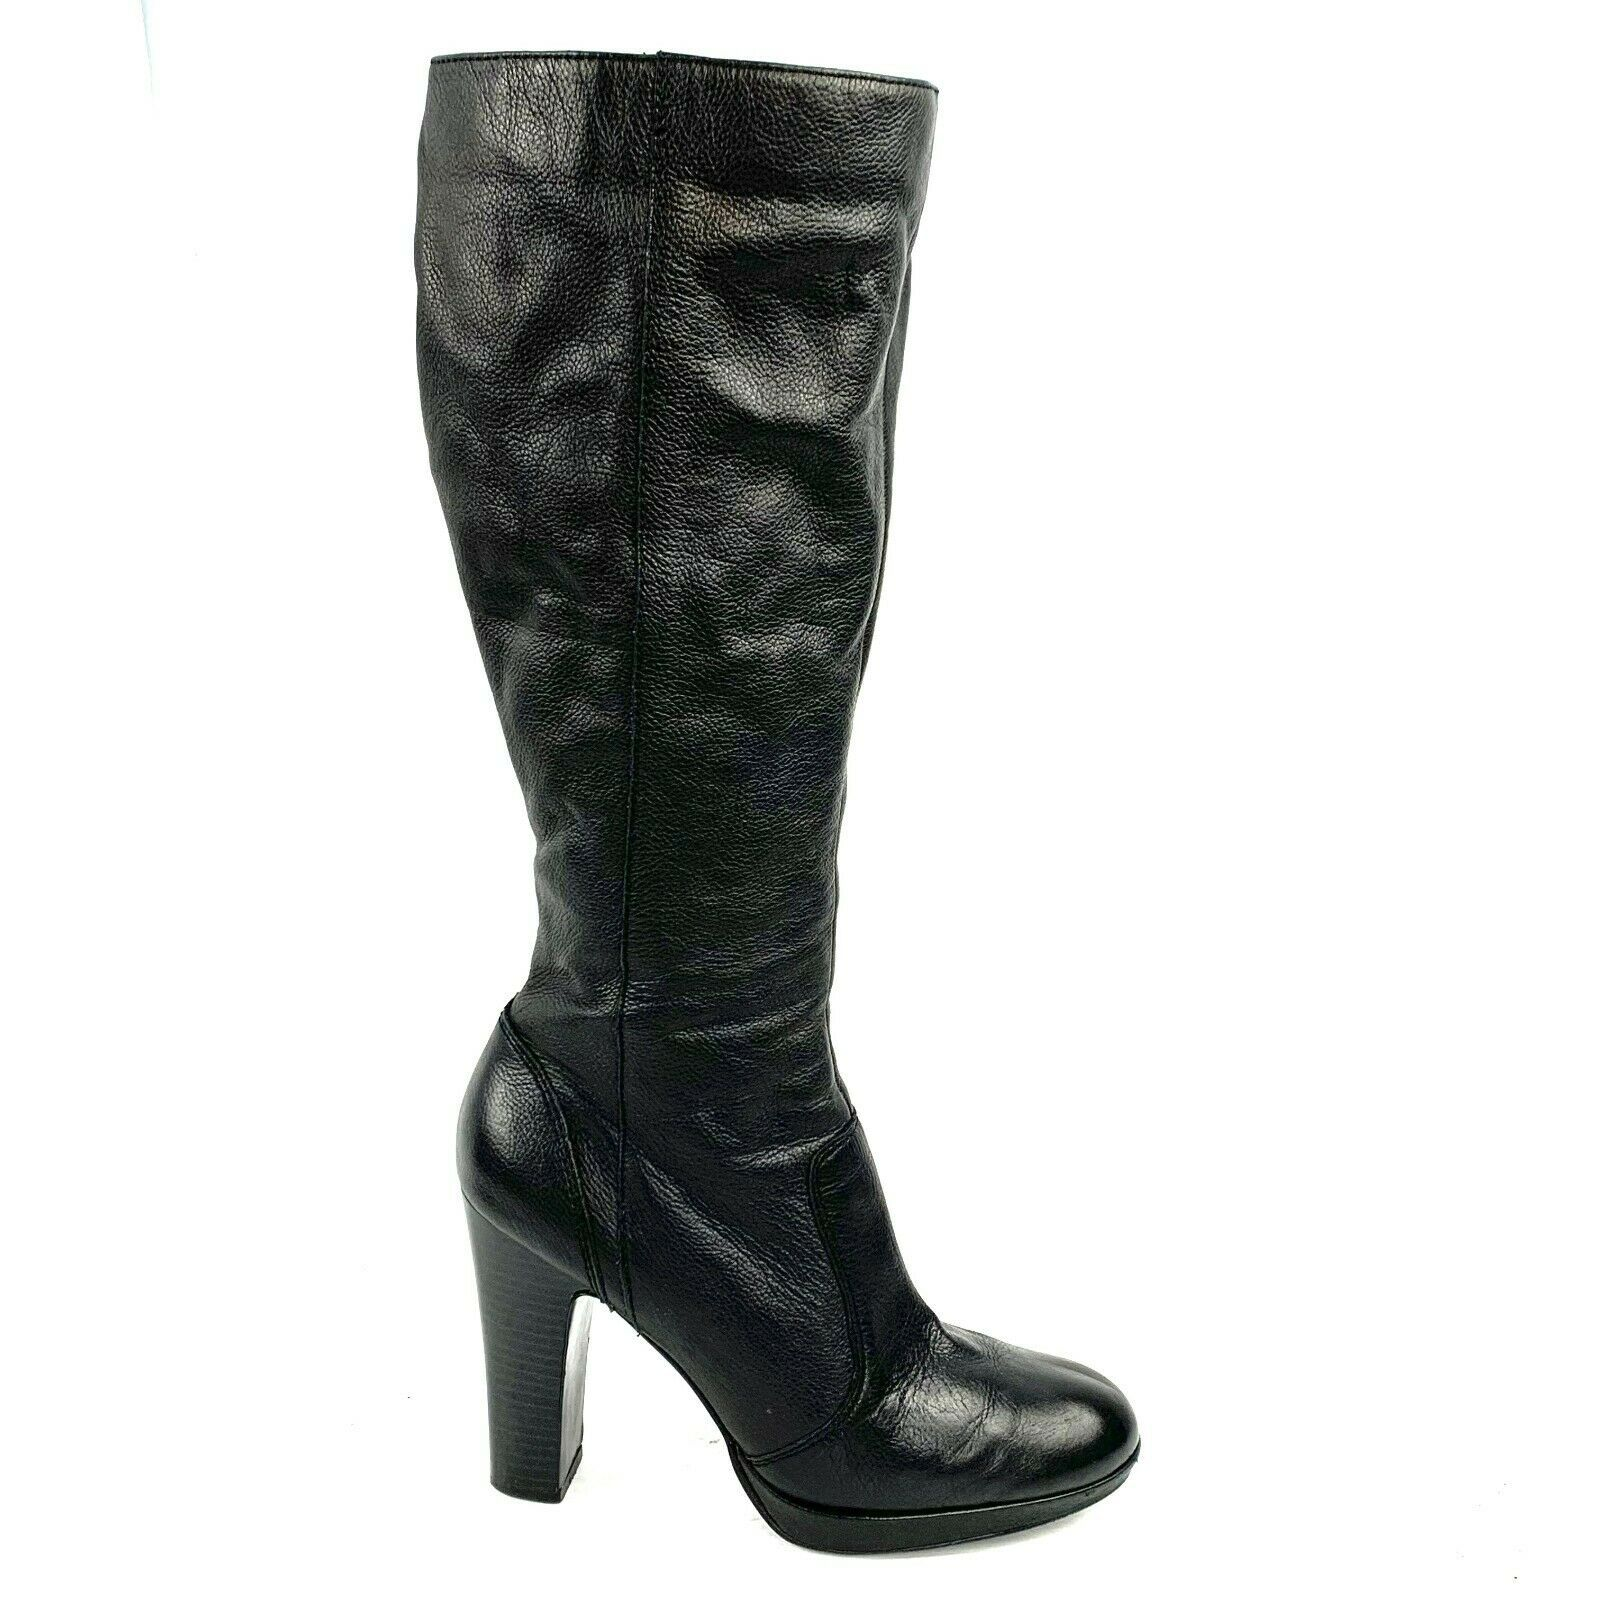 "Primary image for SIMPLY VERA  by Vera Wang ""Brie"" Black Leather Platform Zip Heel Boots Size 8 M"